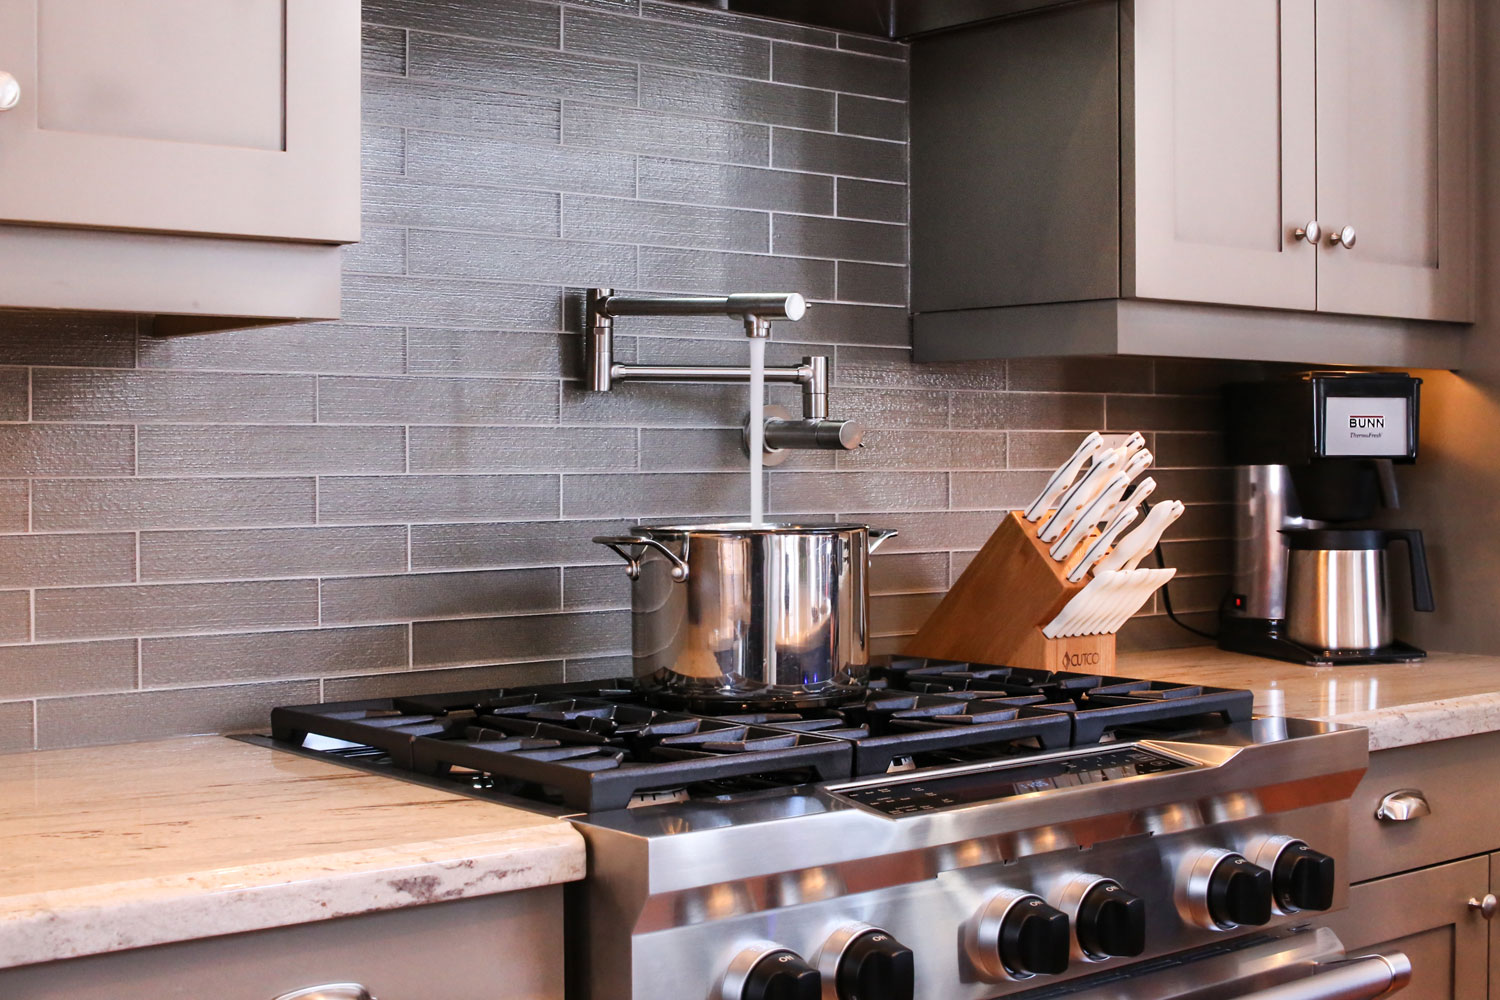 kitchen design with water faucet above the stove - total living concepts barrie ontario